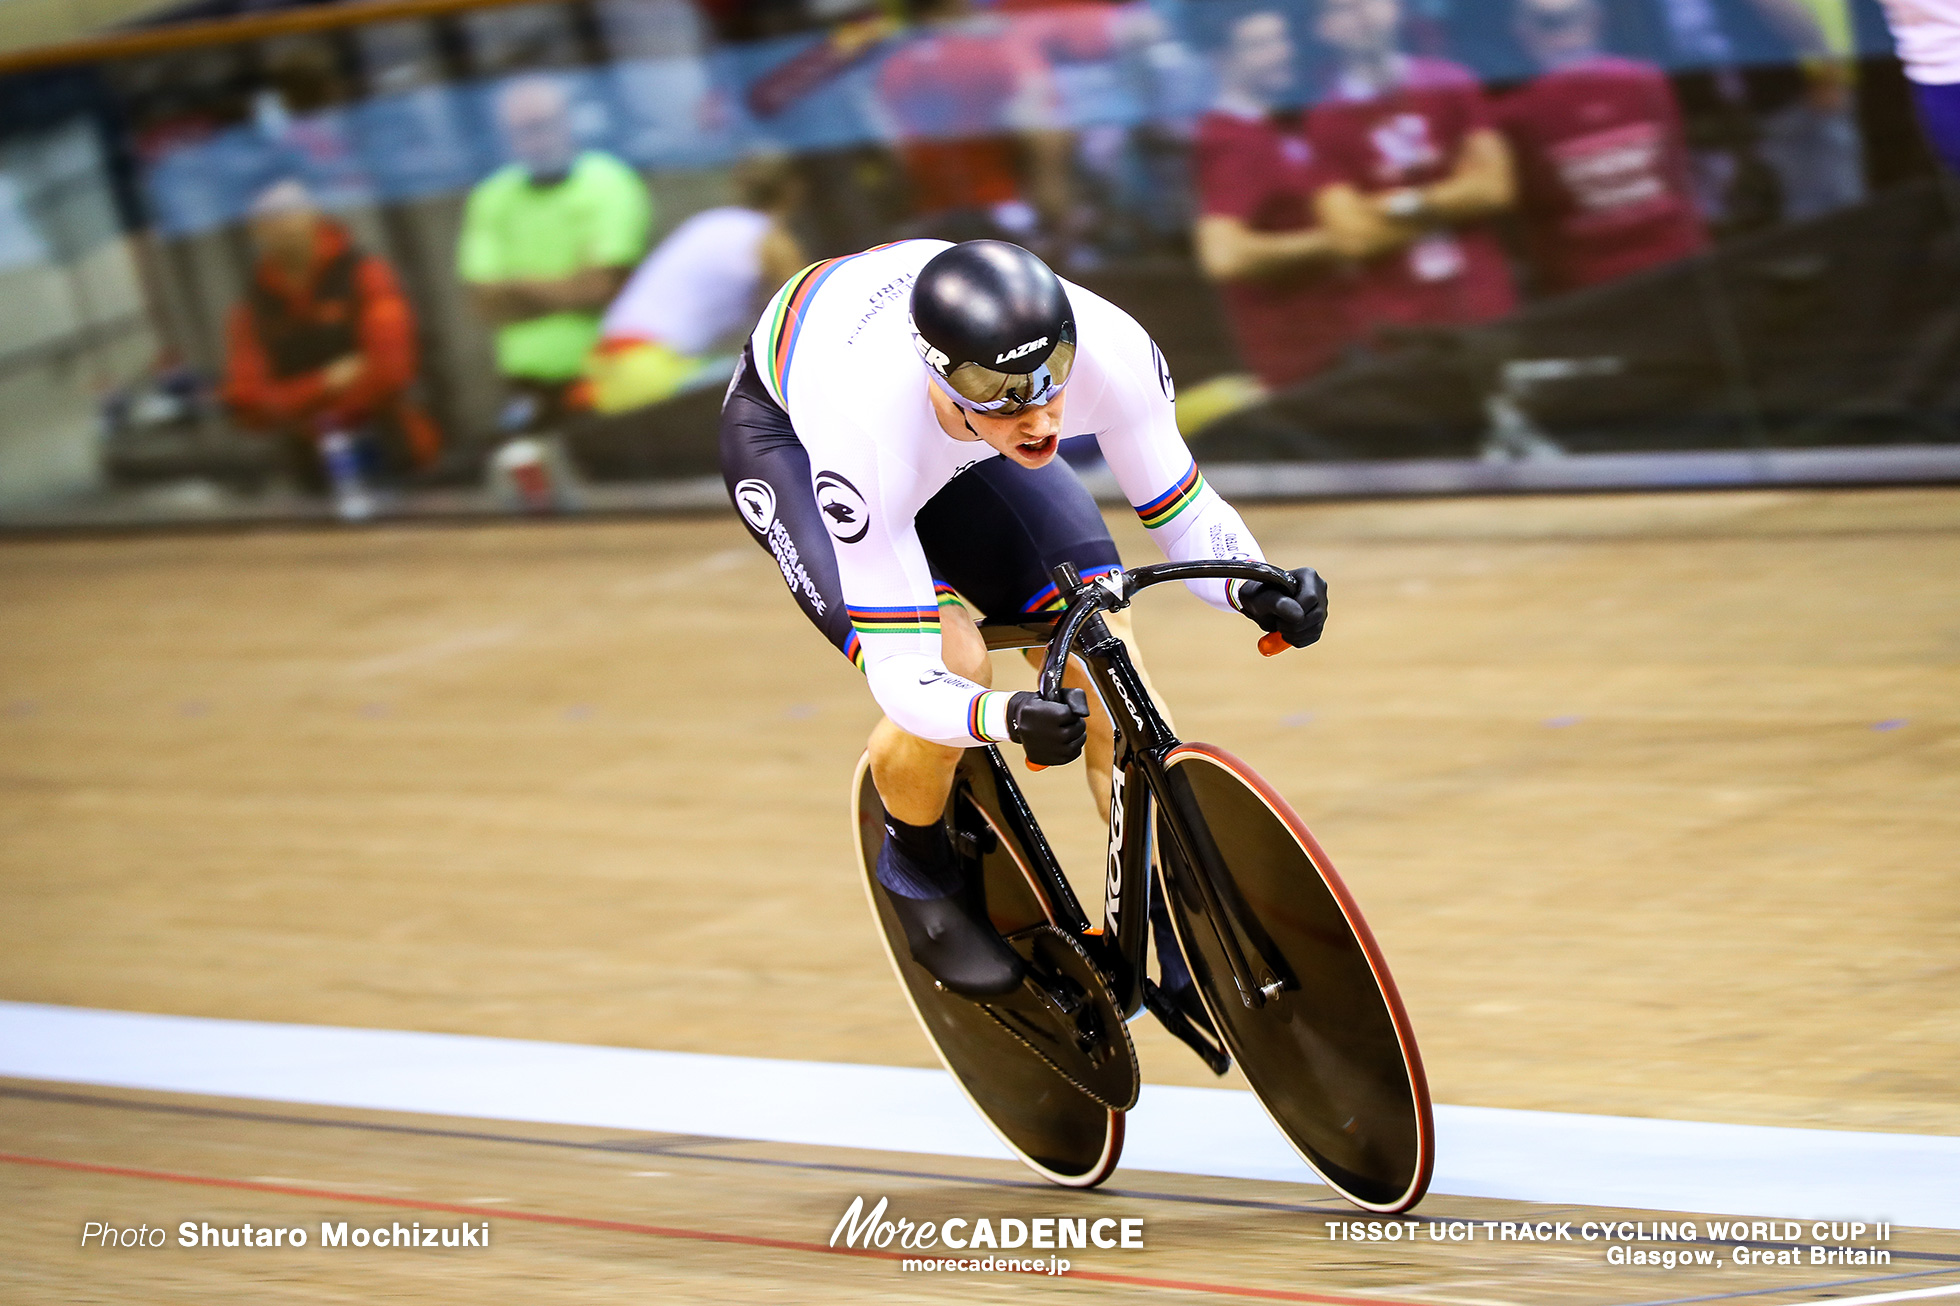 Harrie Lavreysen (NED), Qualifying / Men's Sprint / TISSOT UCI TRACK CYCLING WORLD CUP II, Glasgow, Great Britain